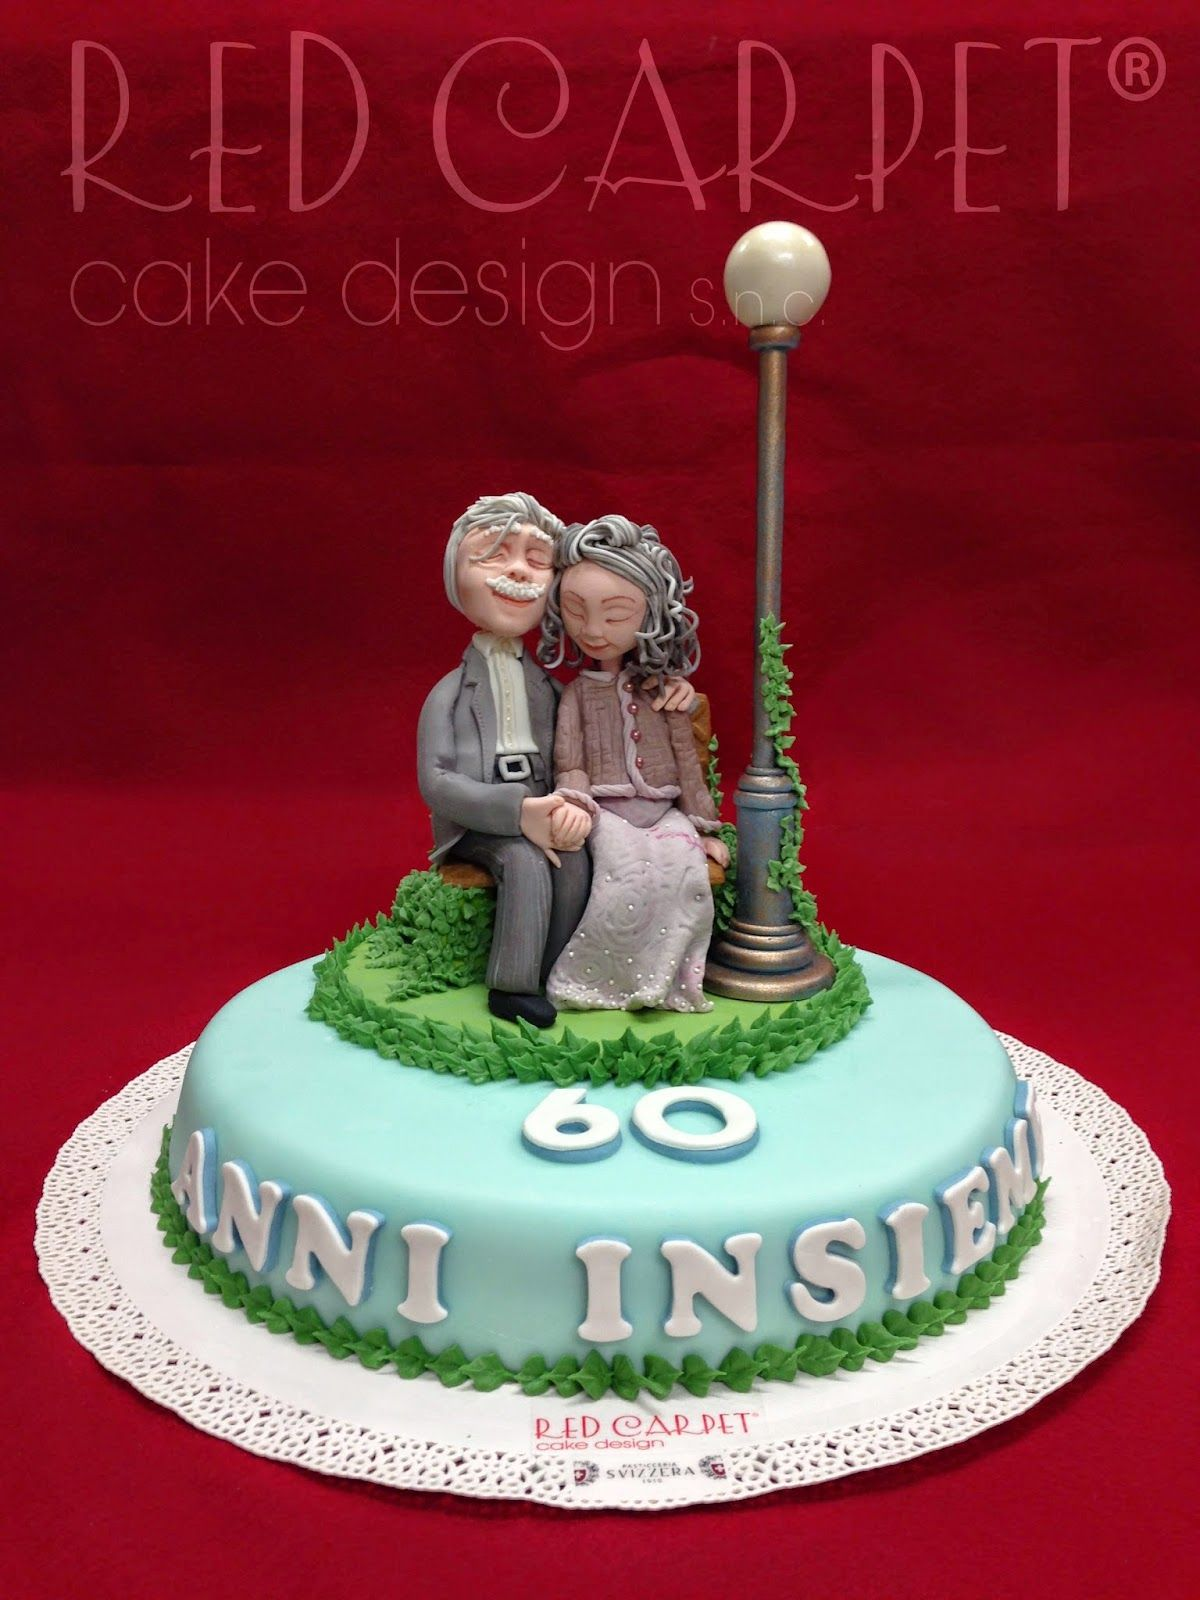 OLD COUPLE IN LOVE 60     ANNIVERSARY by Red Carpet Cake Design     OLD COUPLE IN LOVE 60     ANNIVERSARY by Red Carpet Cake Design